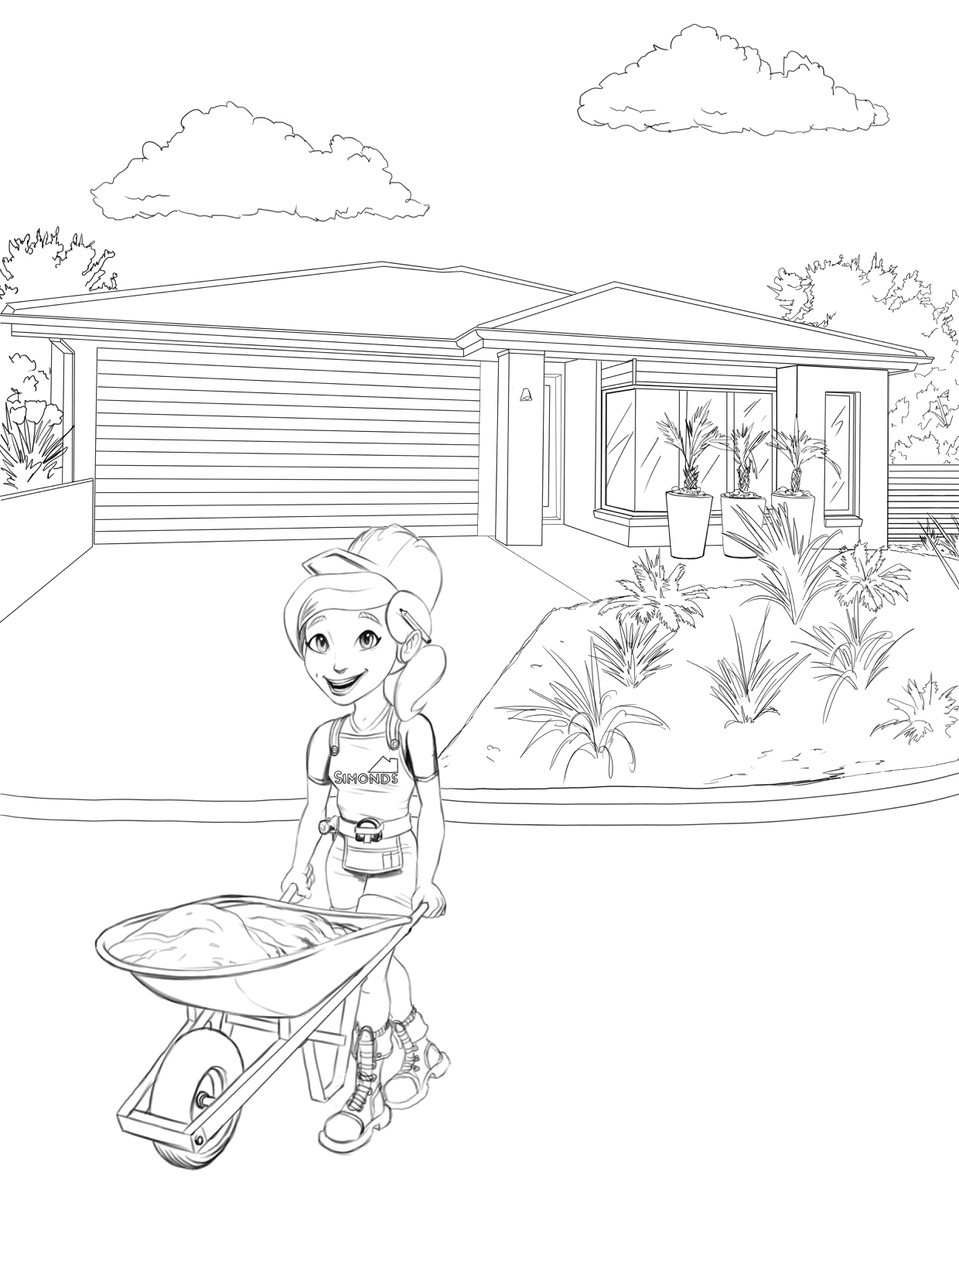 Grange wallis colouring in page 02